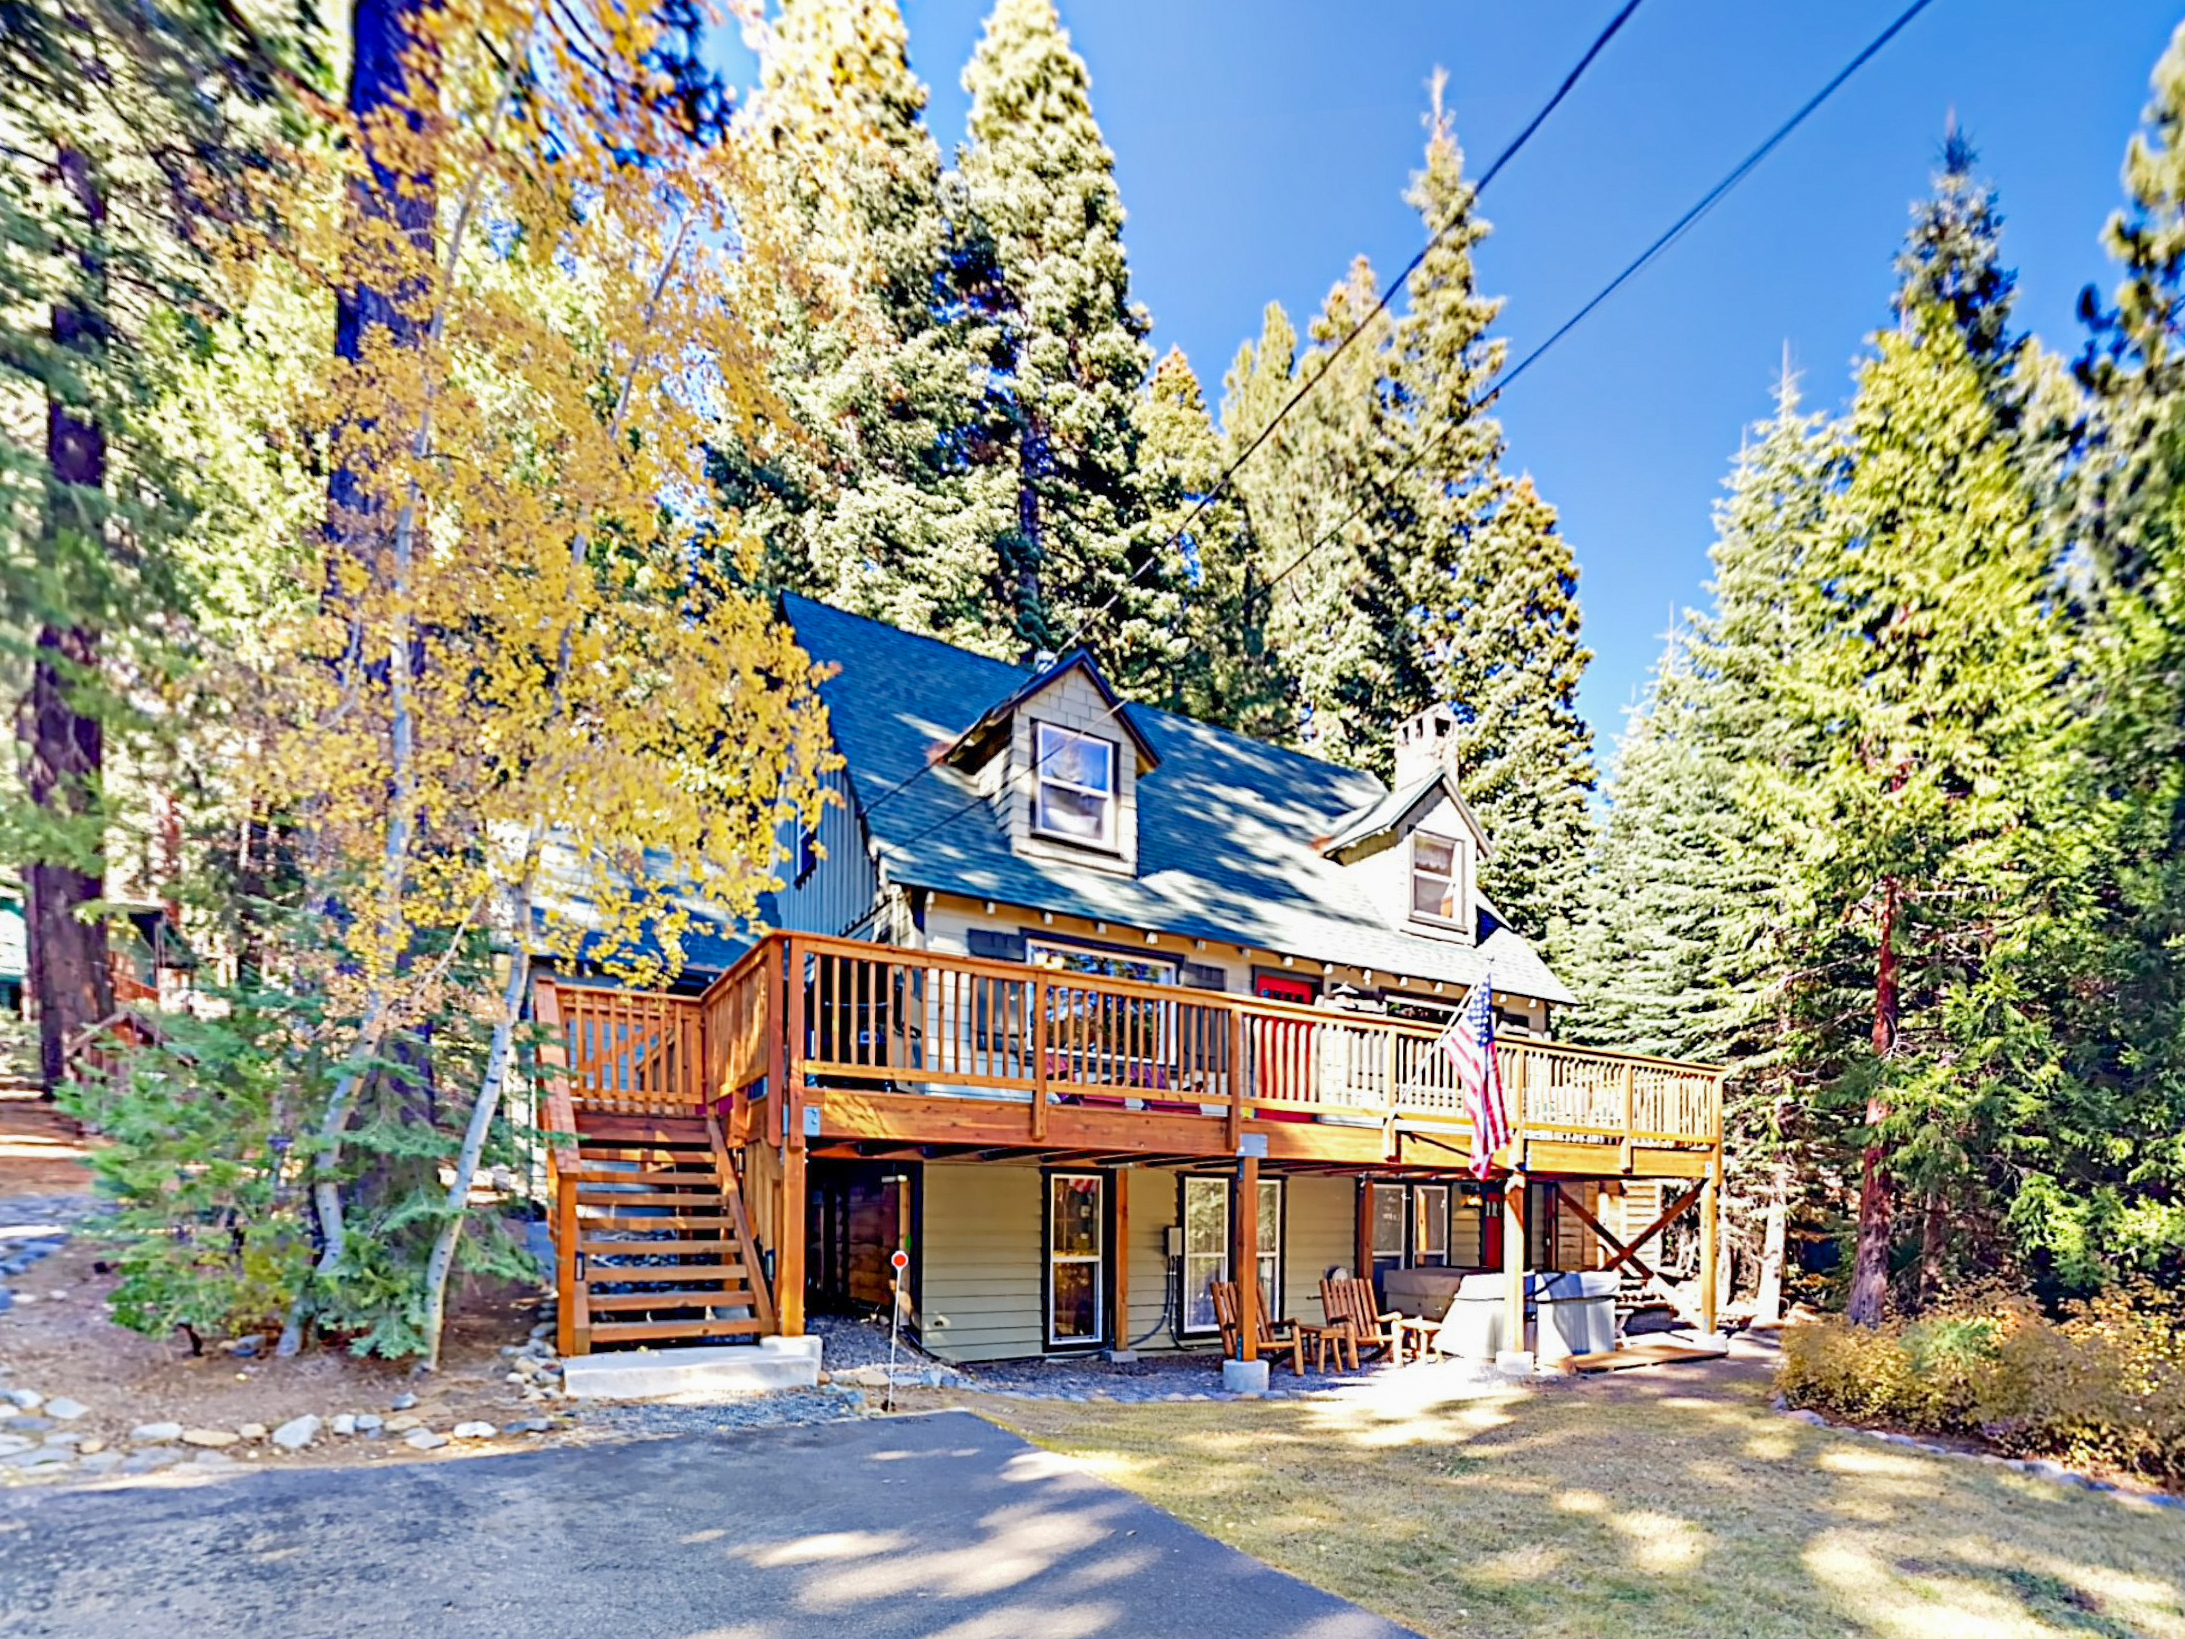 Tahoe City CA Vacation Rental Welcome to Tahoe